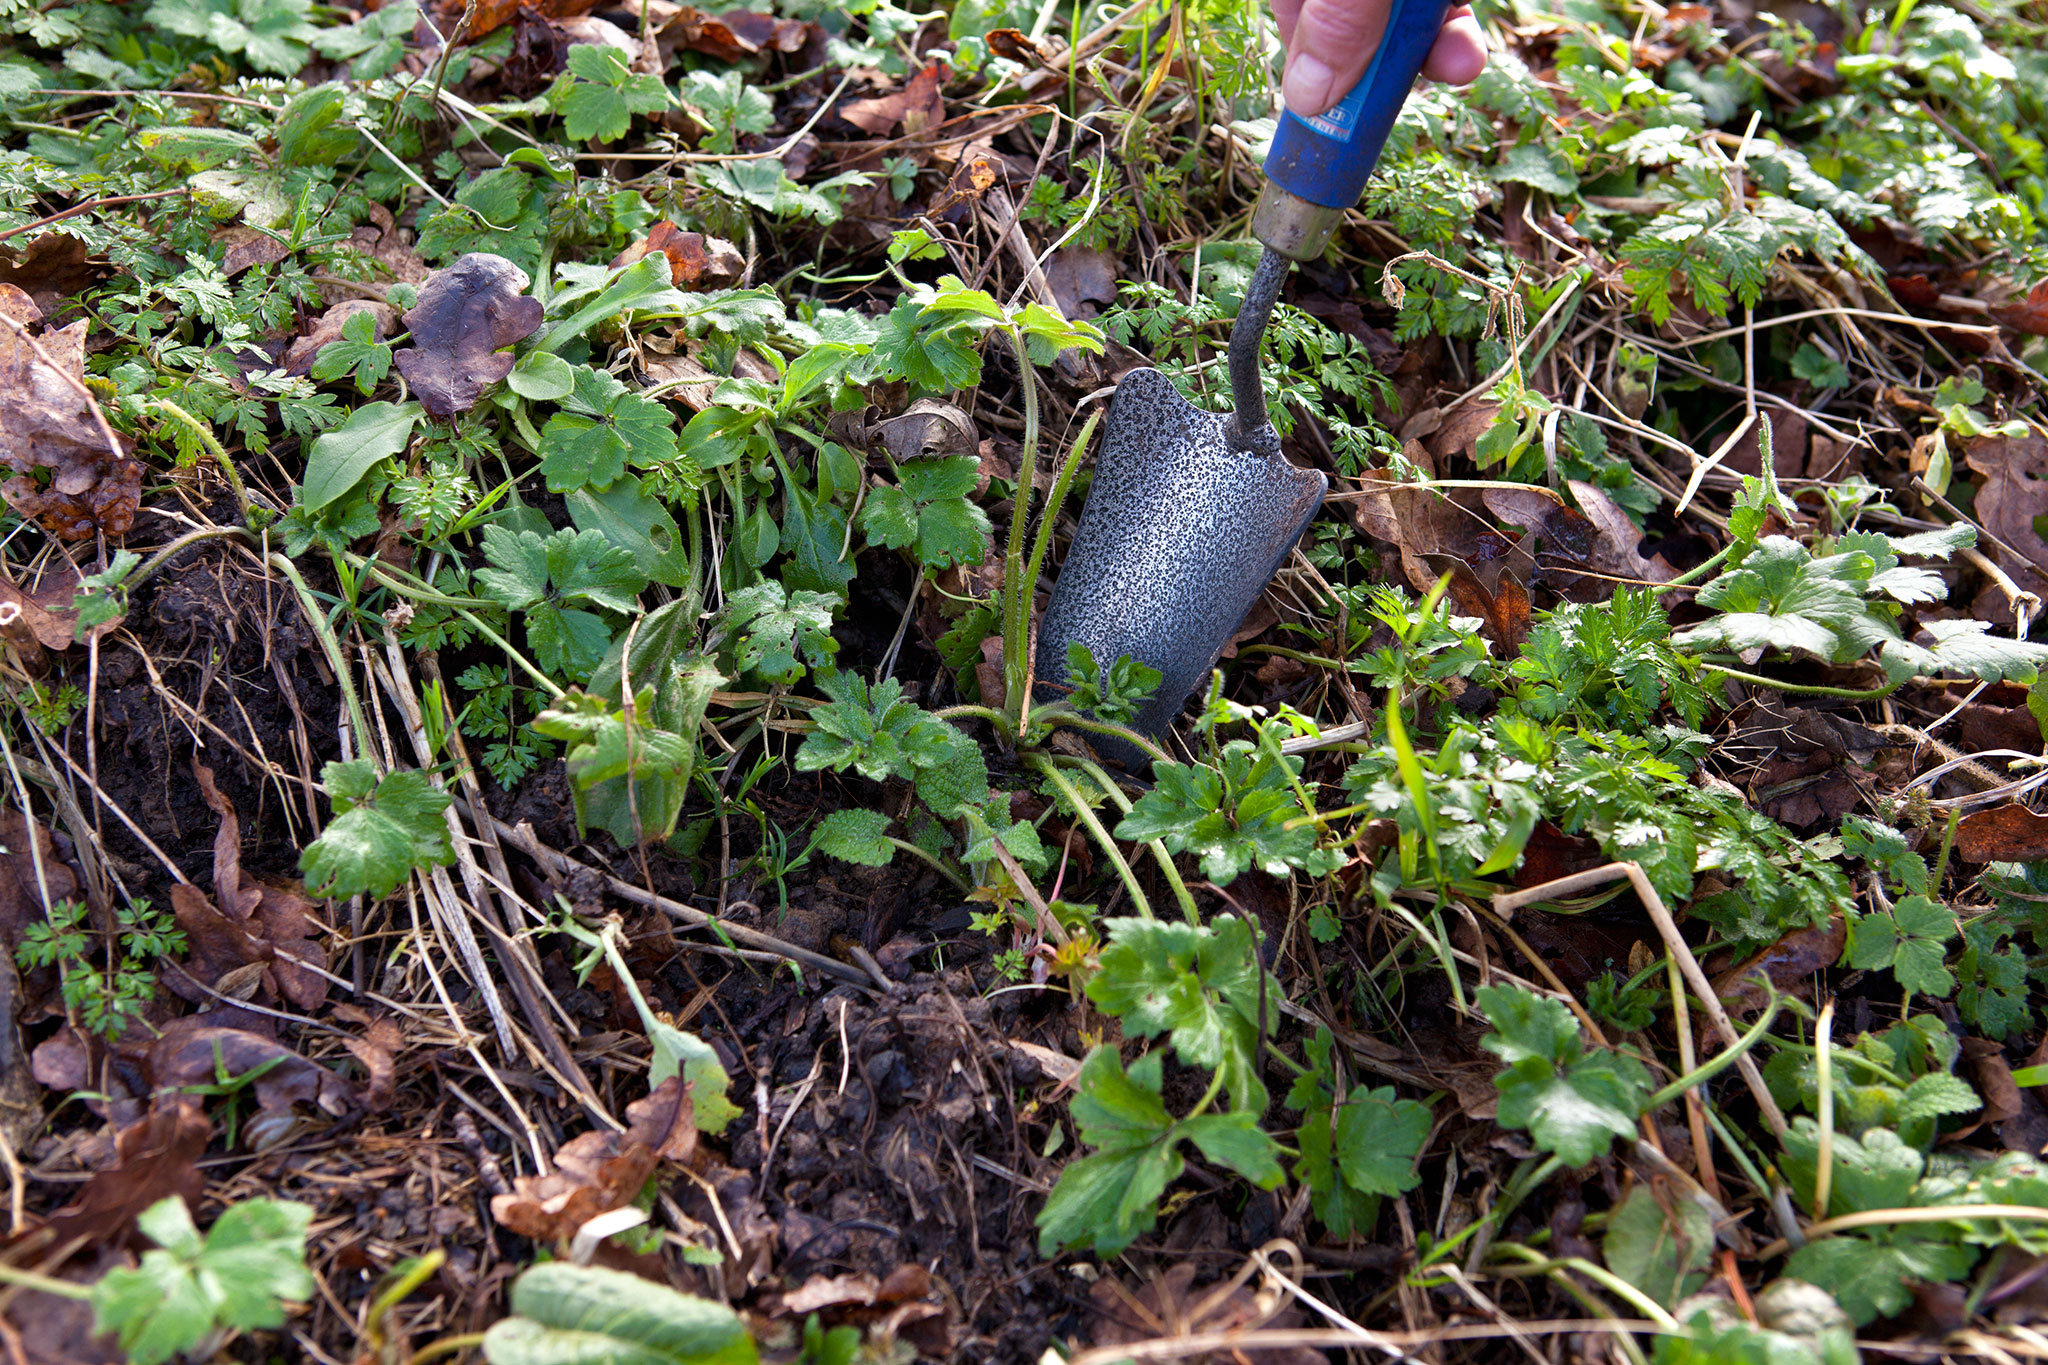 Weeding without Chemicals